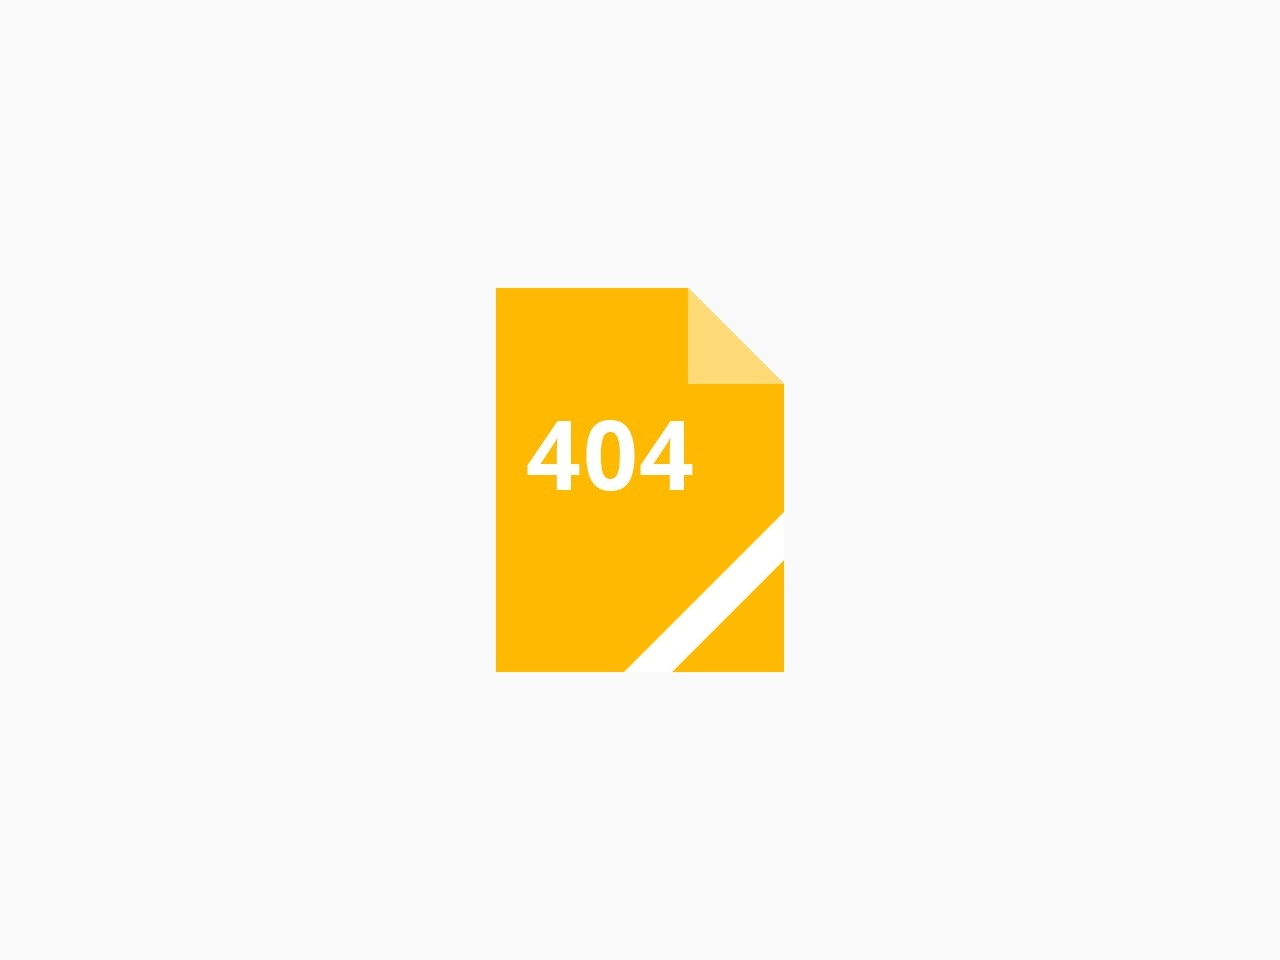 Xneolinks Premium (PL edition) Coupon Code 15% Off